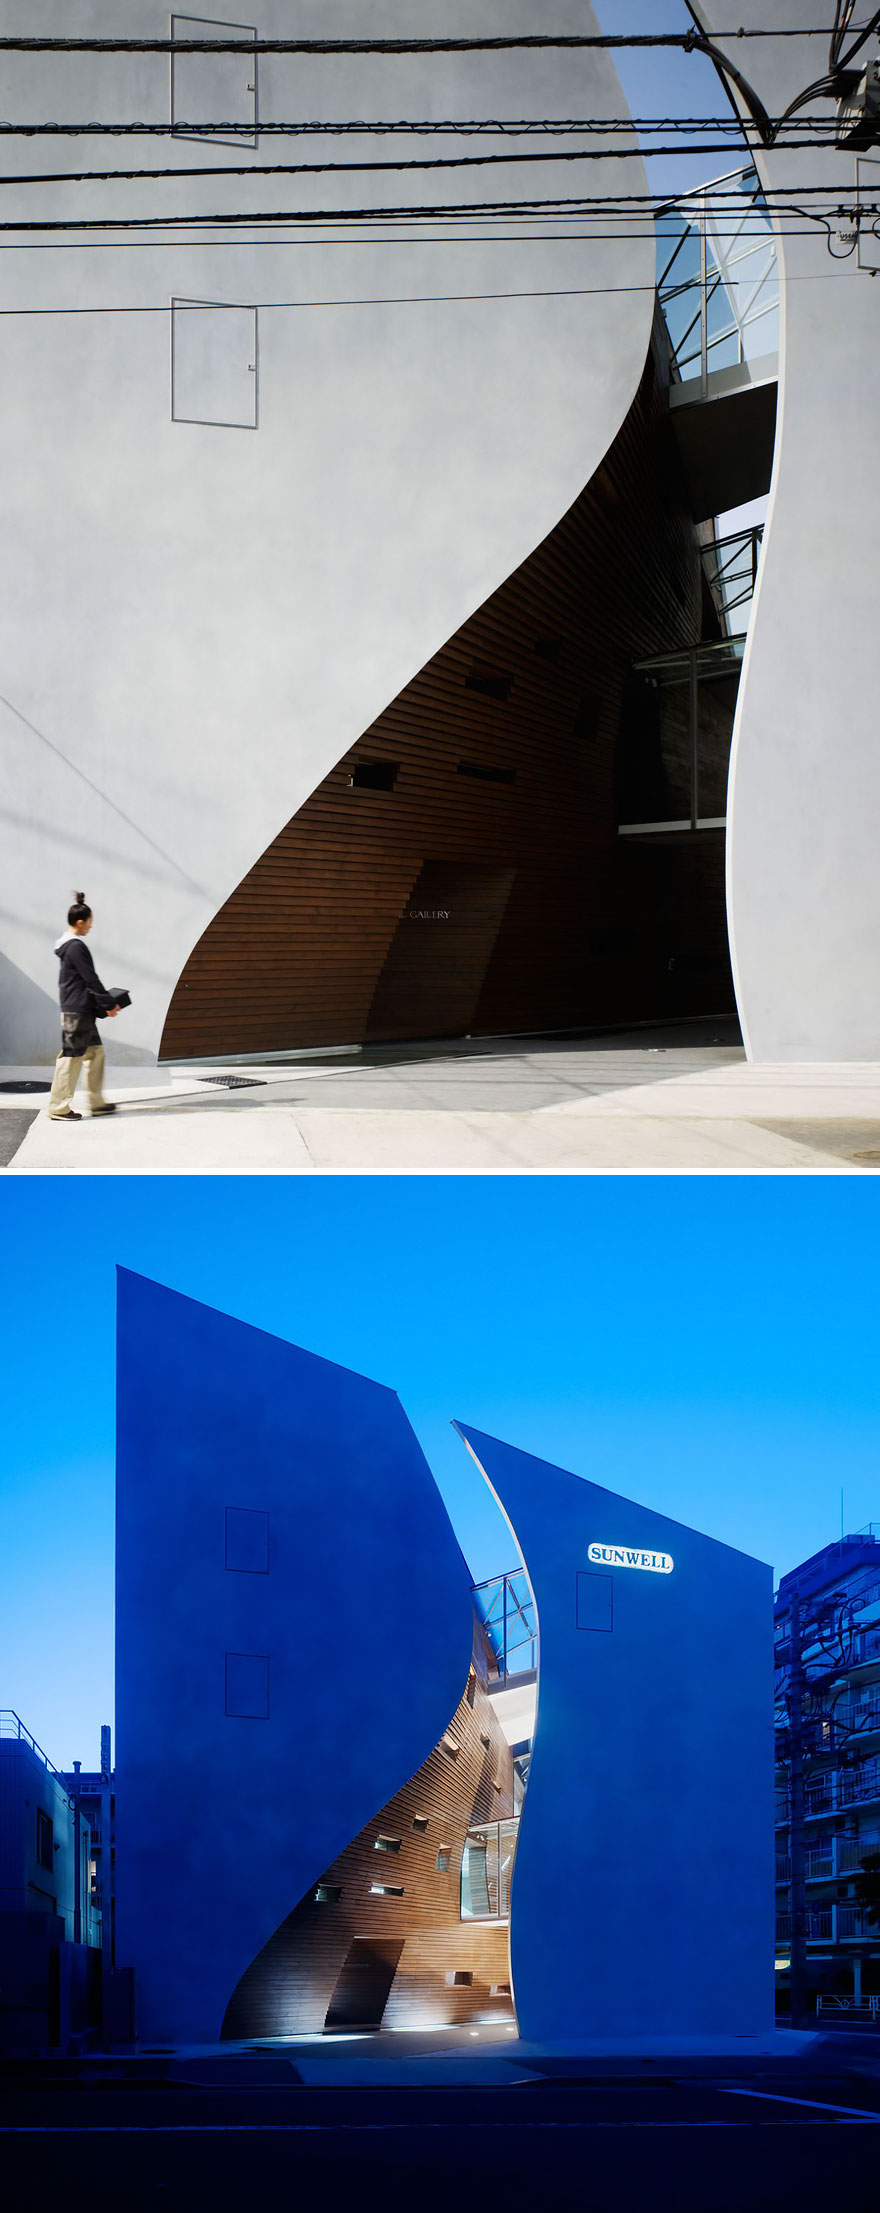 Sunwell Muse By Takato Tamagami And Be-fun Design, Tokyo, Japan